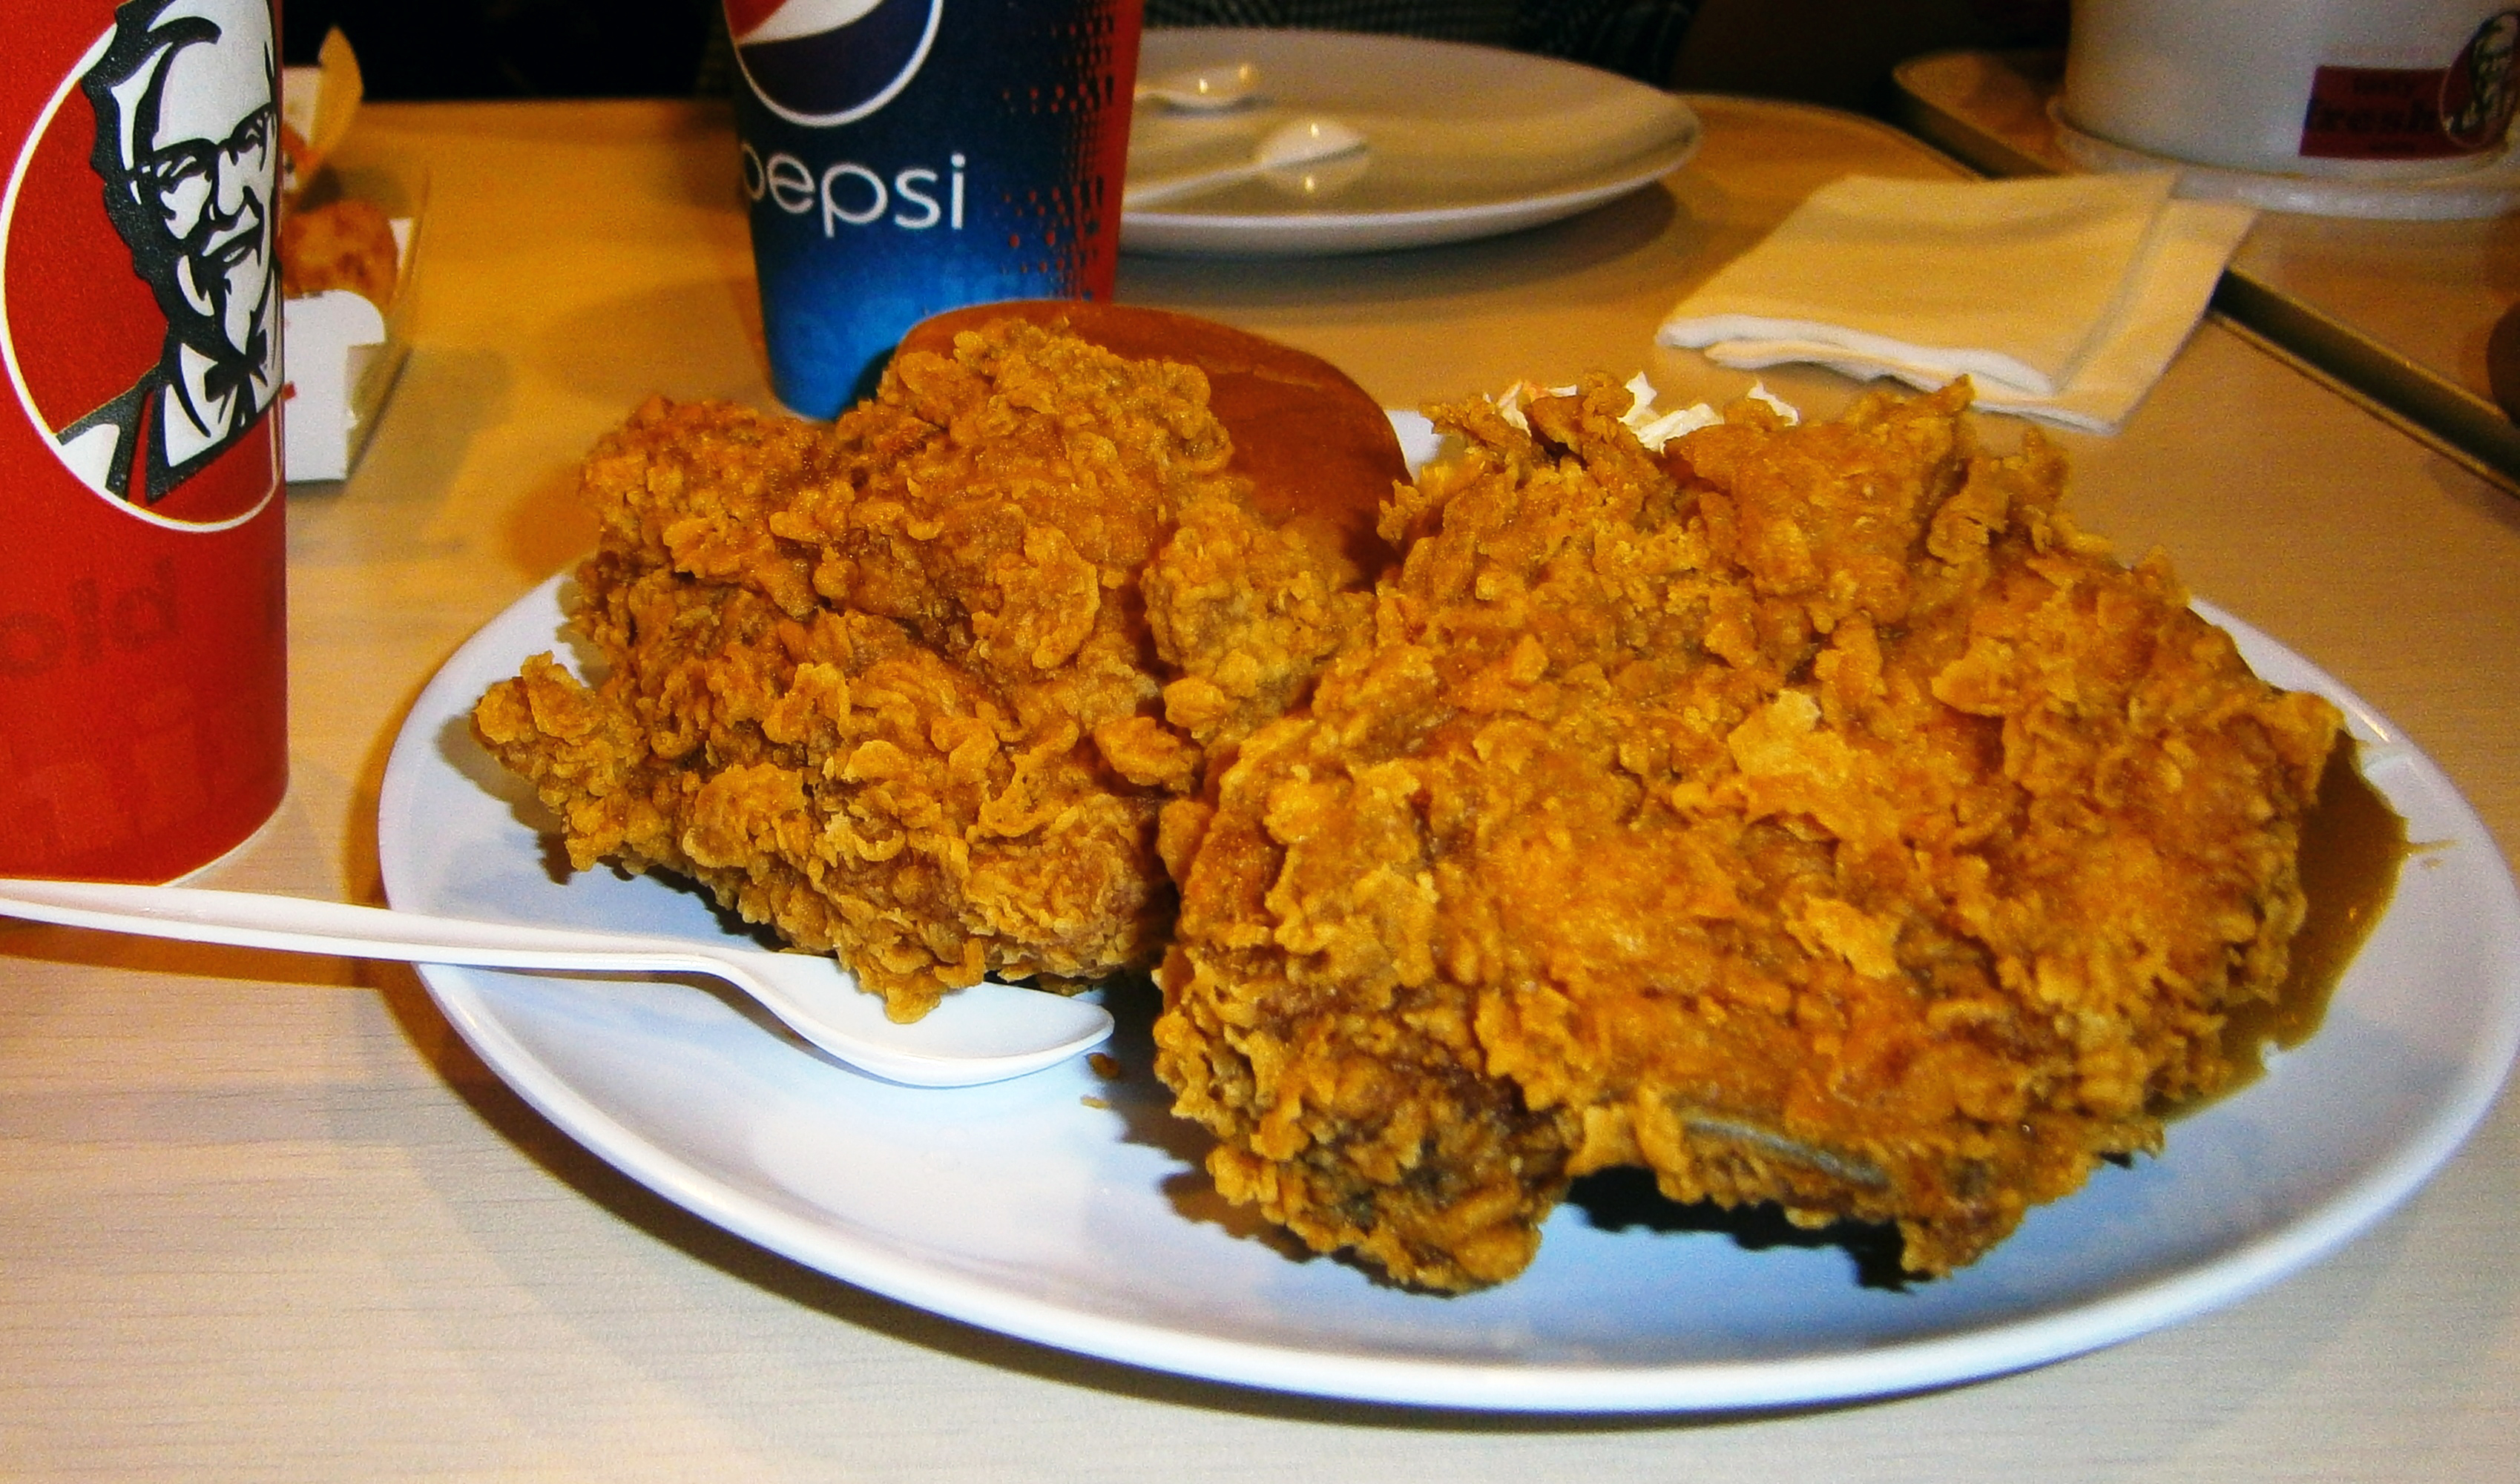 Kfc chicken wings bucket - photo#14